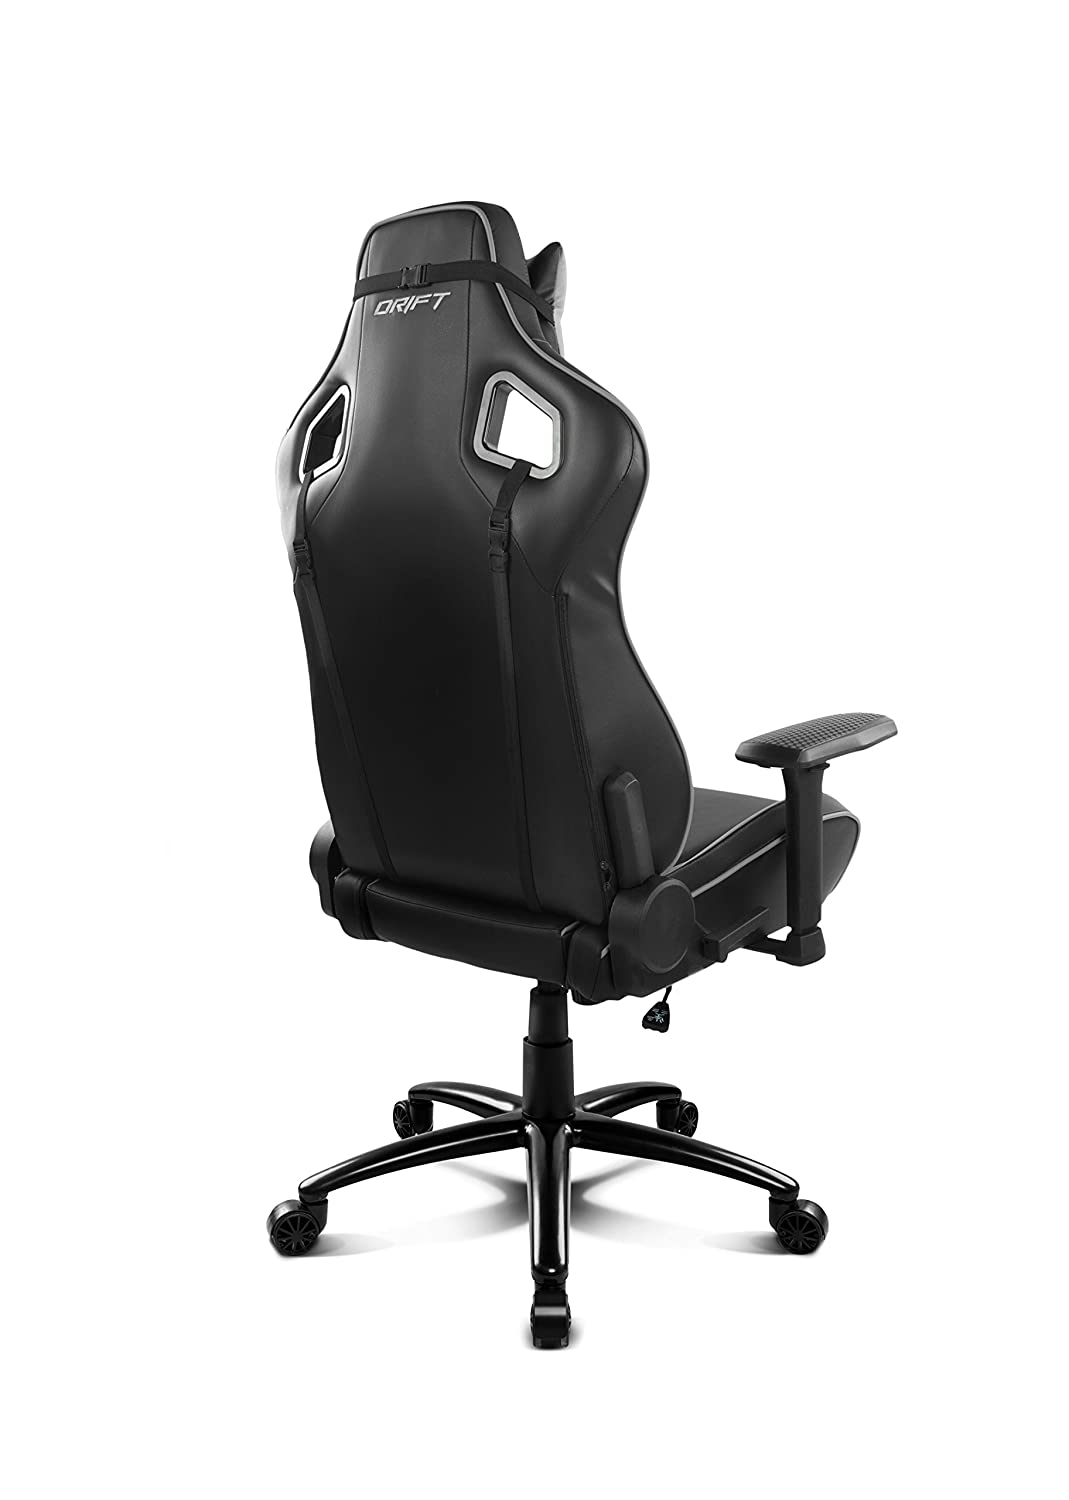 Amazon.com : Drift dr400bgy Gaming Chair - Black and Grey : Office Products